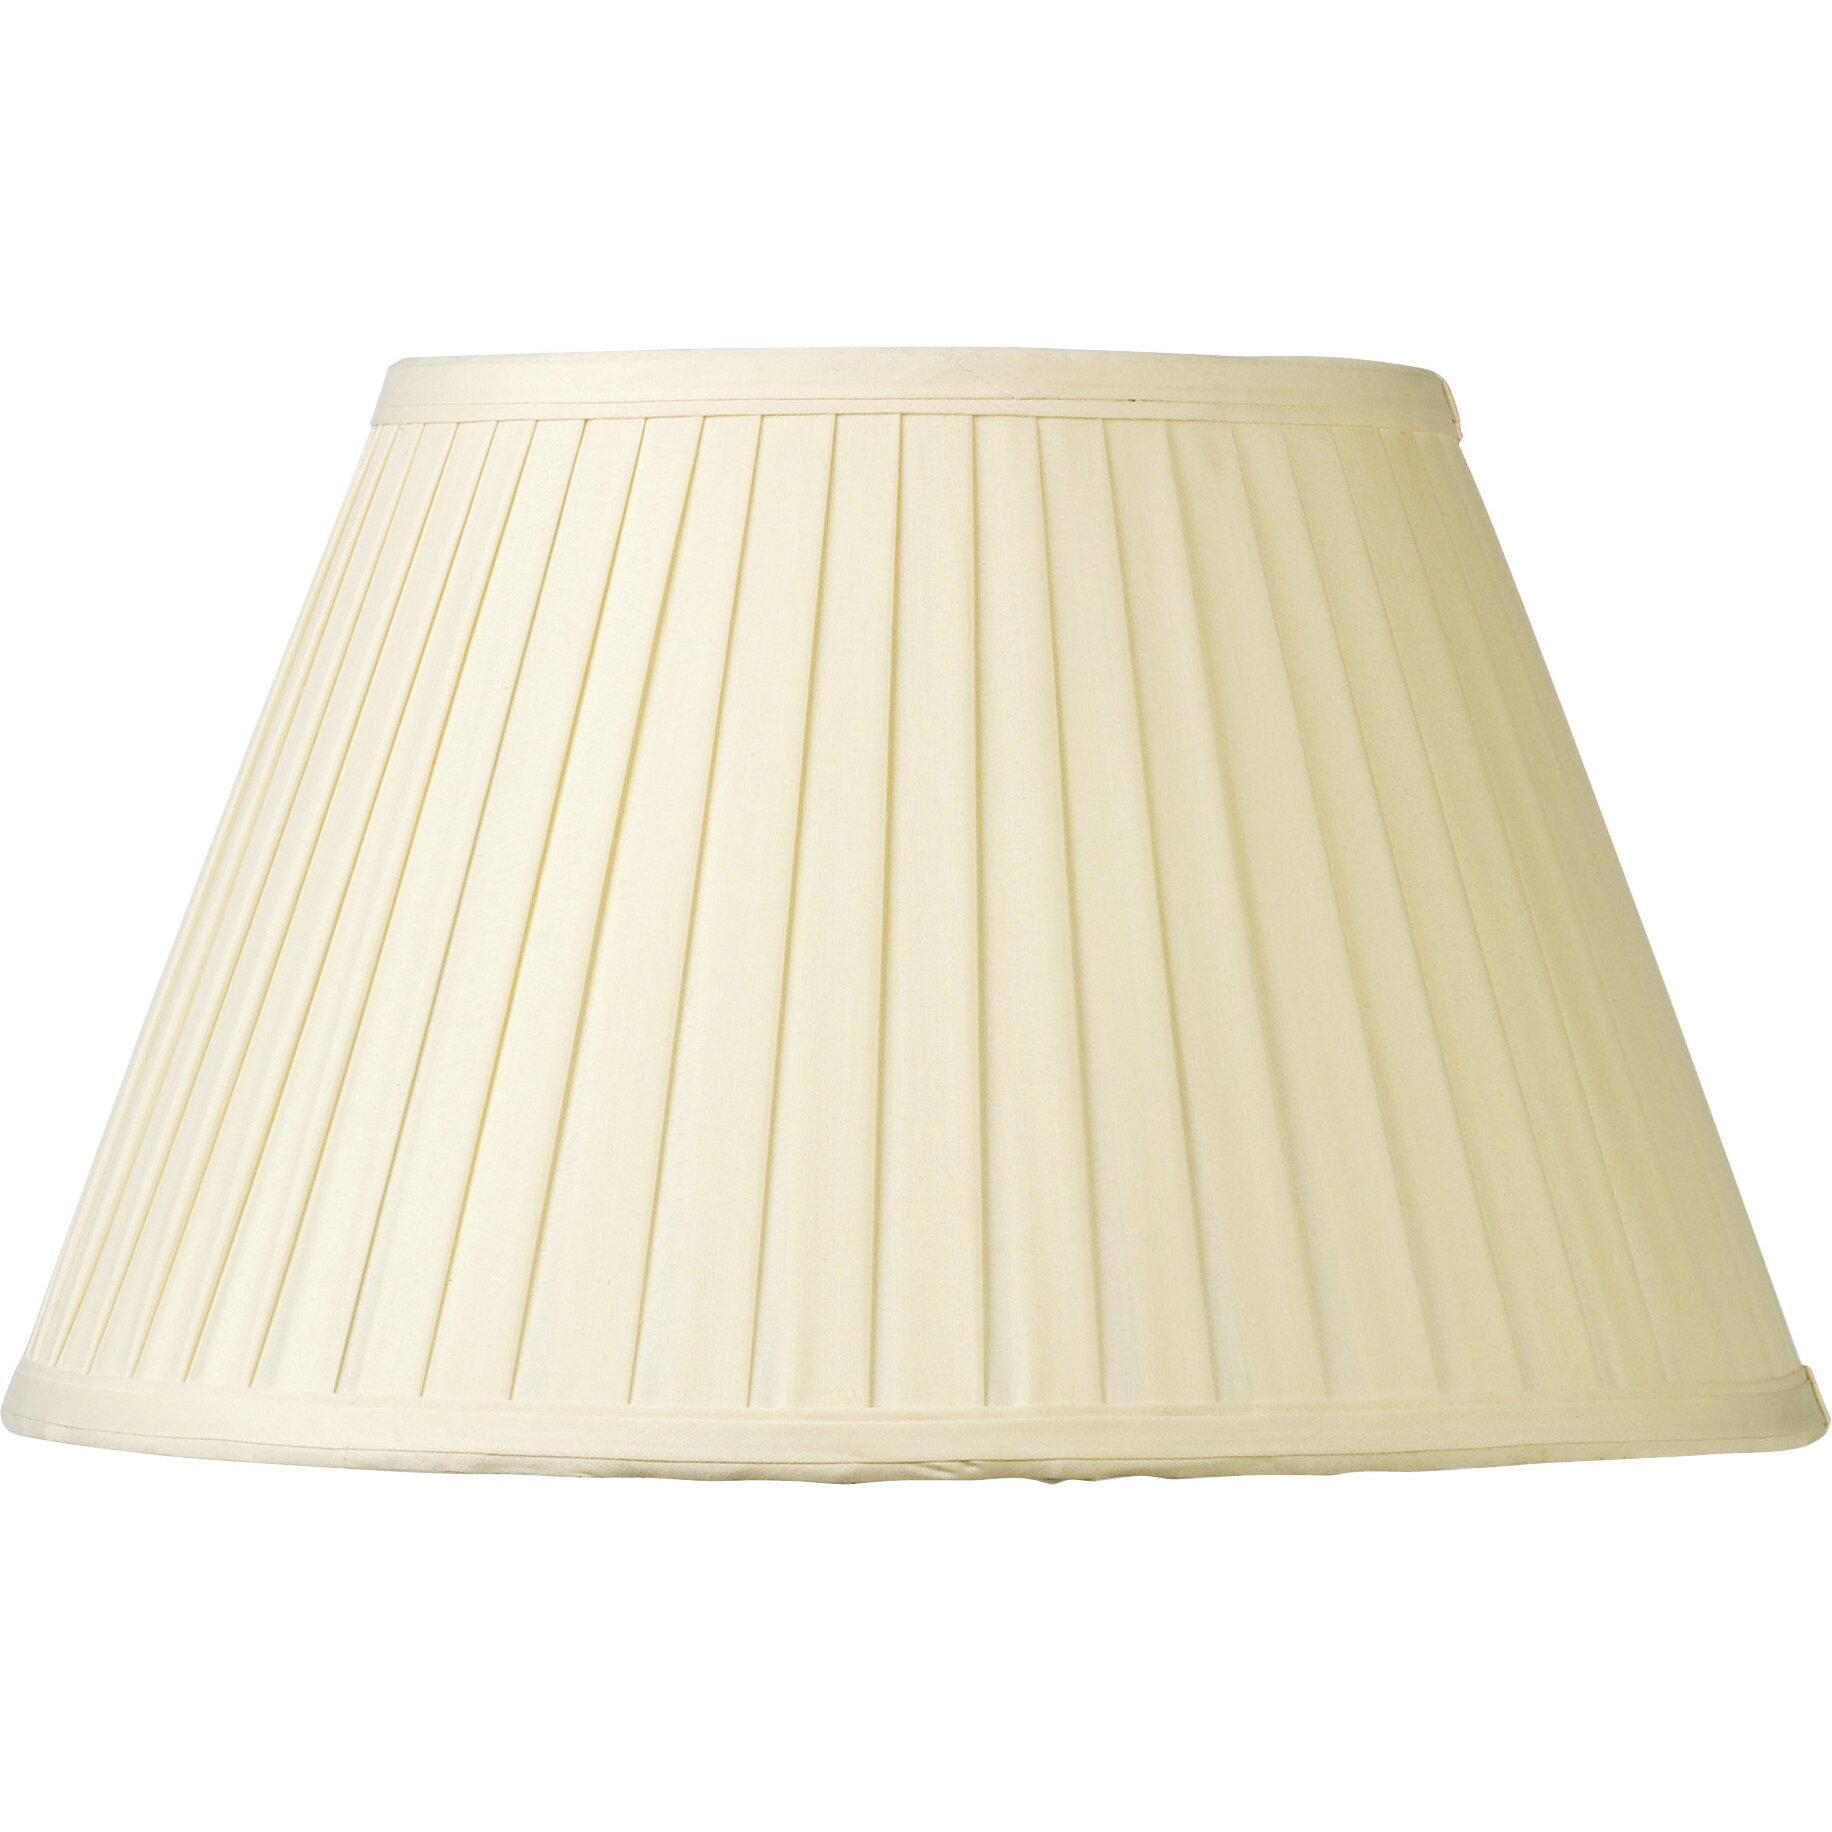 the lighting interiors group cm faux silk empire lamp shade the lighting amp interiors group 30 48cm faux silk empire lamp shade